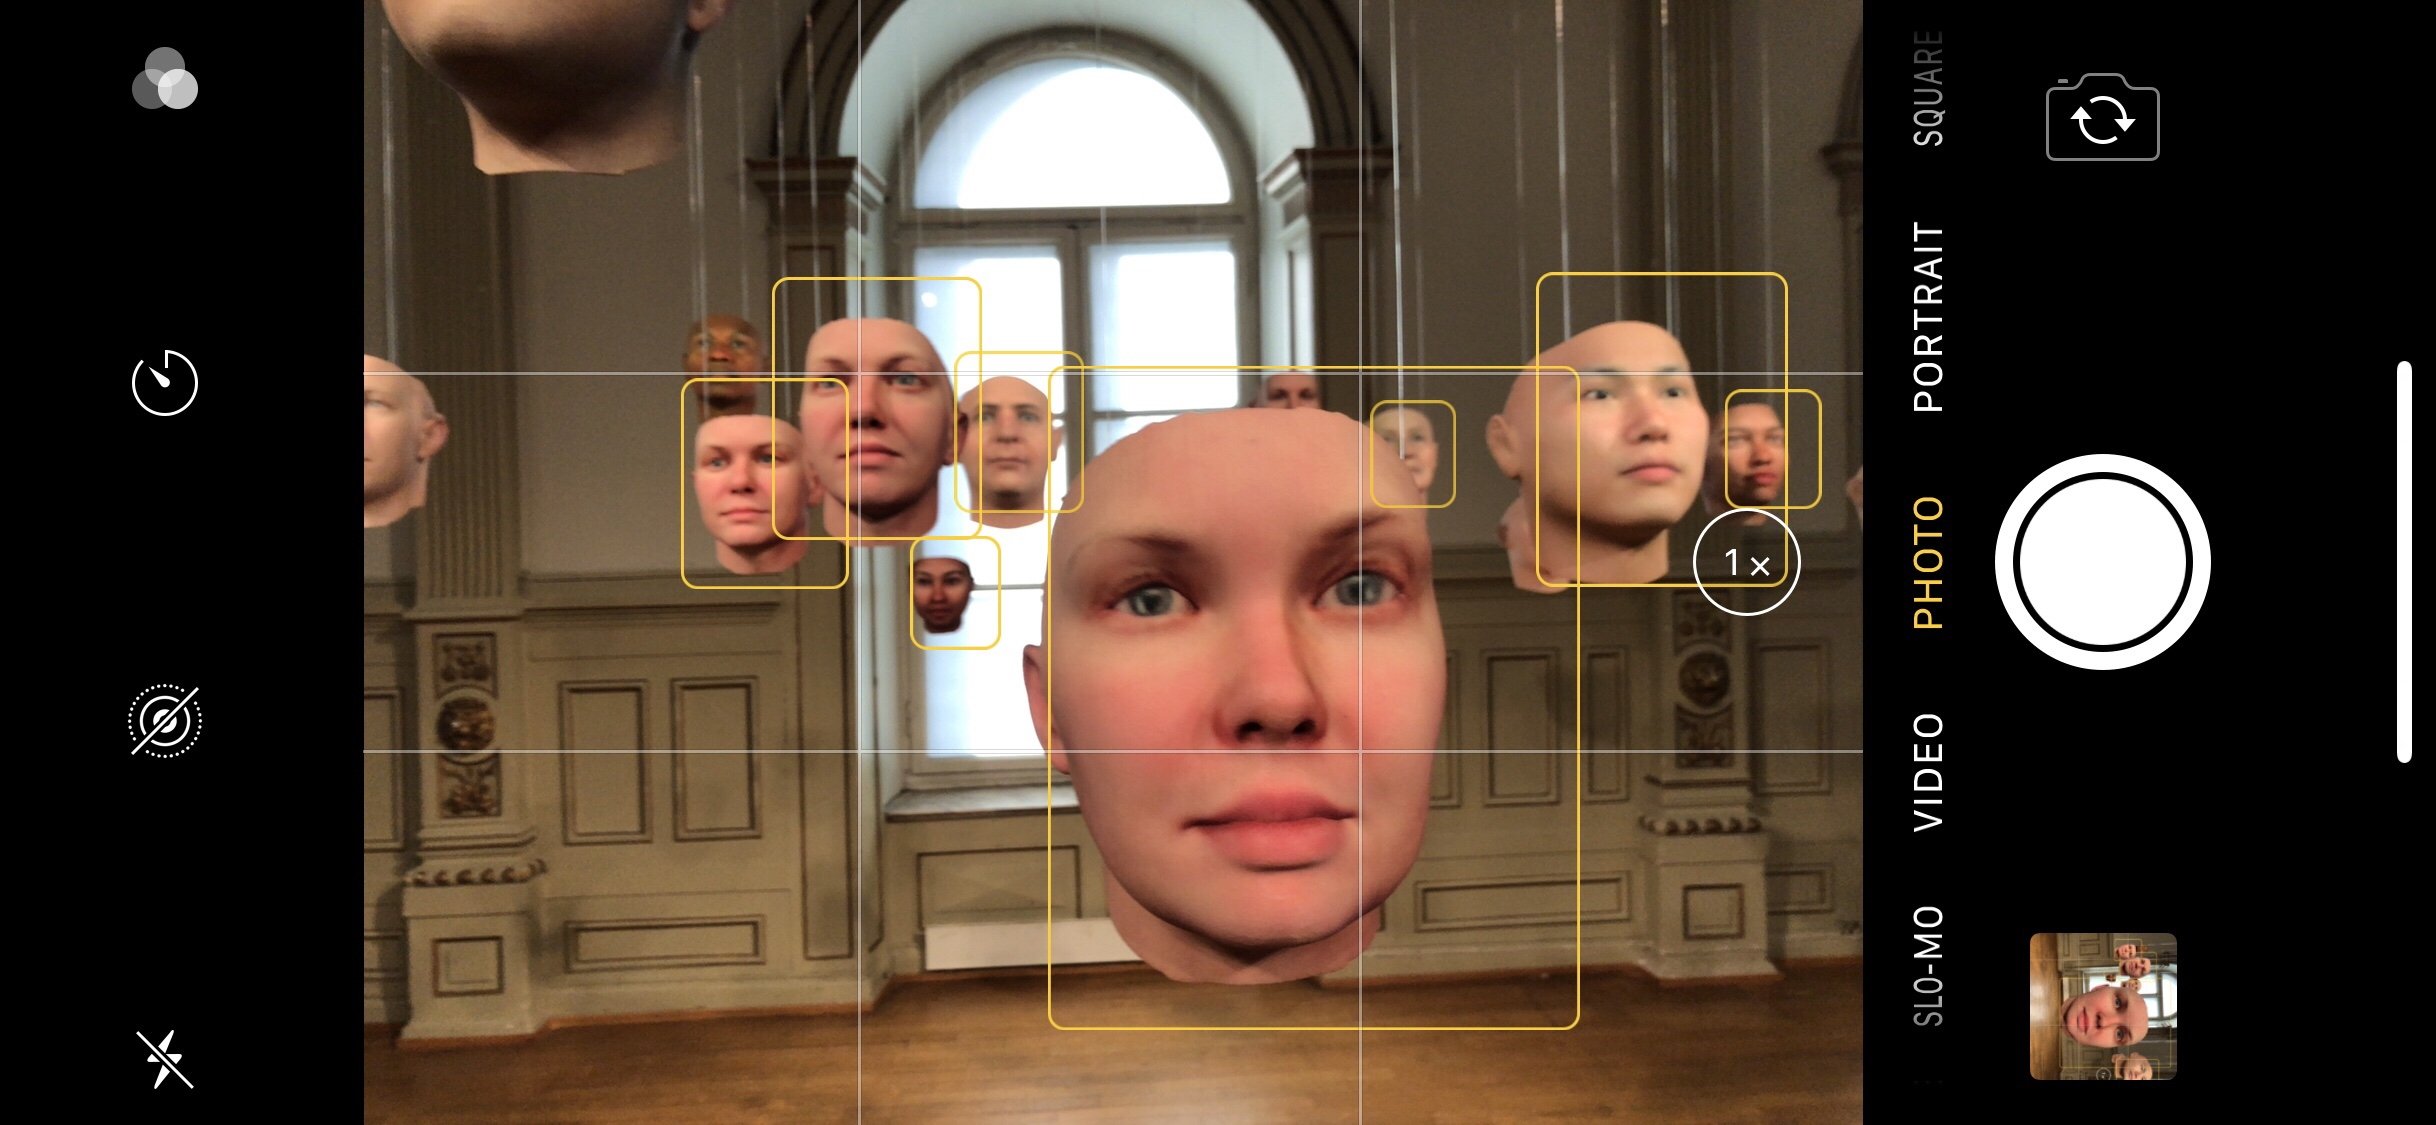 A screenshot of the iPhone camera interface showing hanging masks resembling human faces in an art gallery, and yellow squares around each mask indicating that the phone camera has recognised a human face.